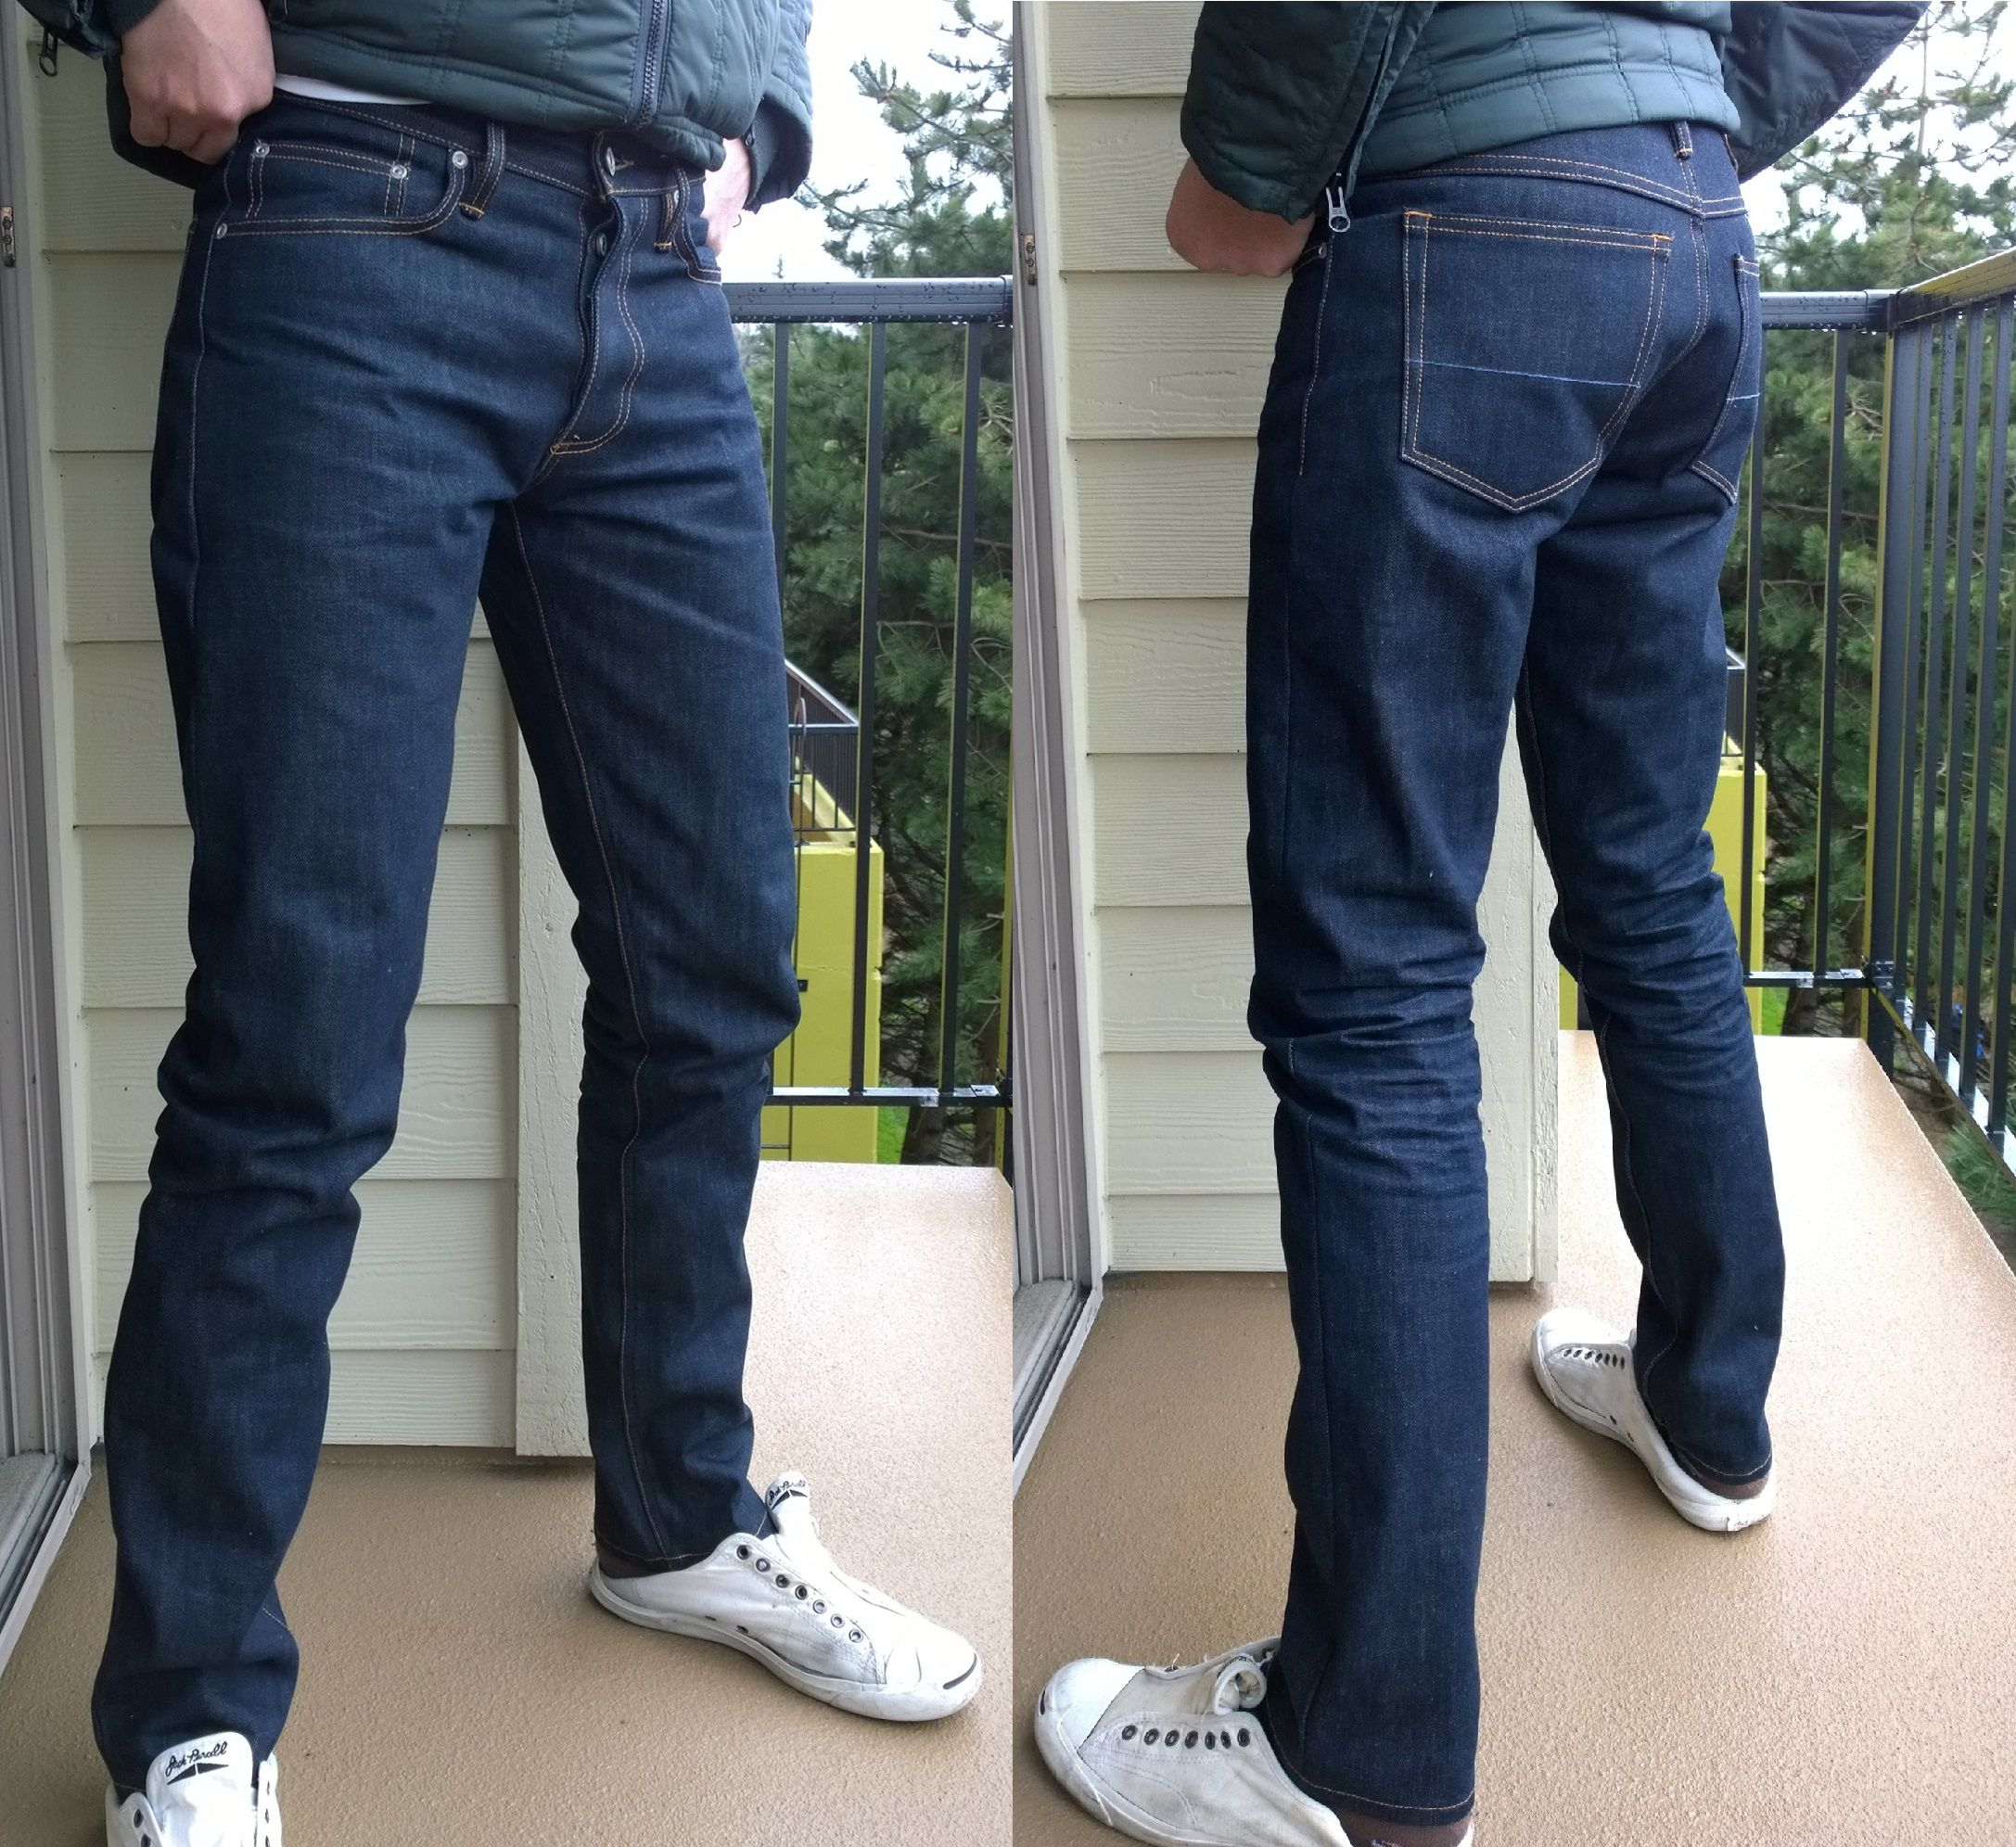 limited sale exquisite style purchase genuine The obligatory 1st fit pic. #gustin #denim | Denim Journey ...